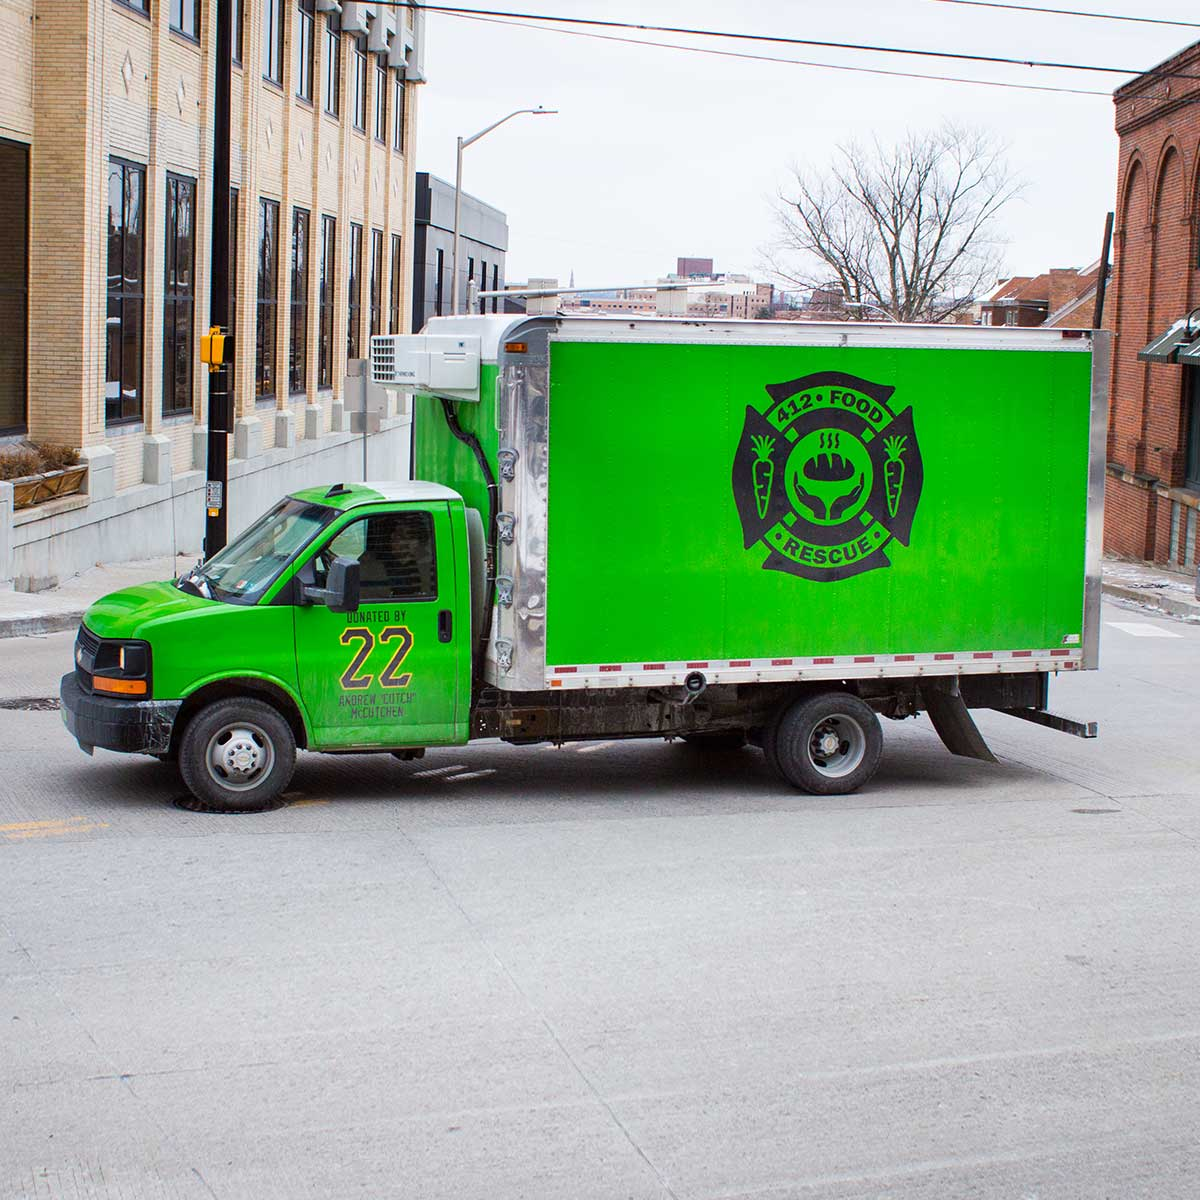 412 Food Rescue truck